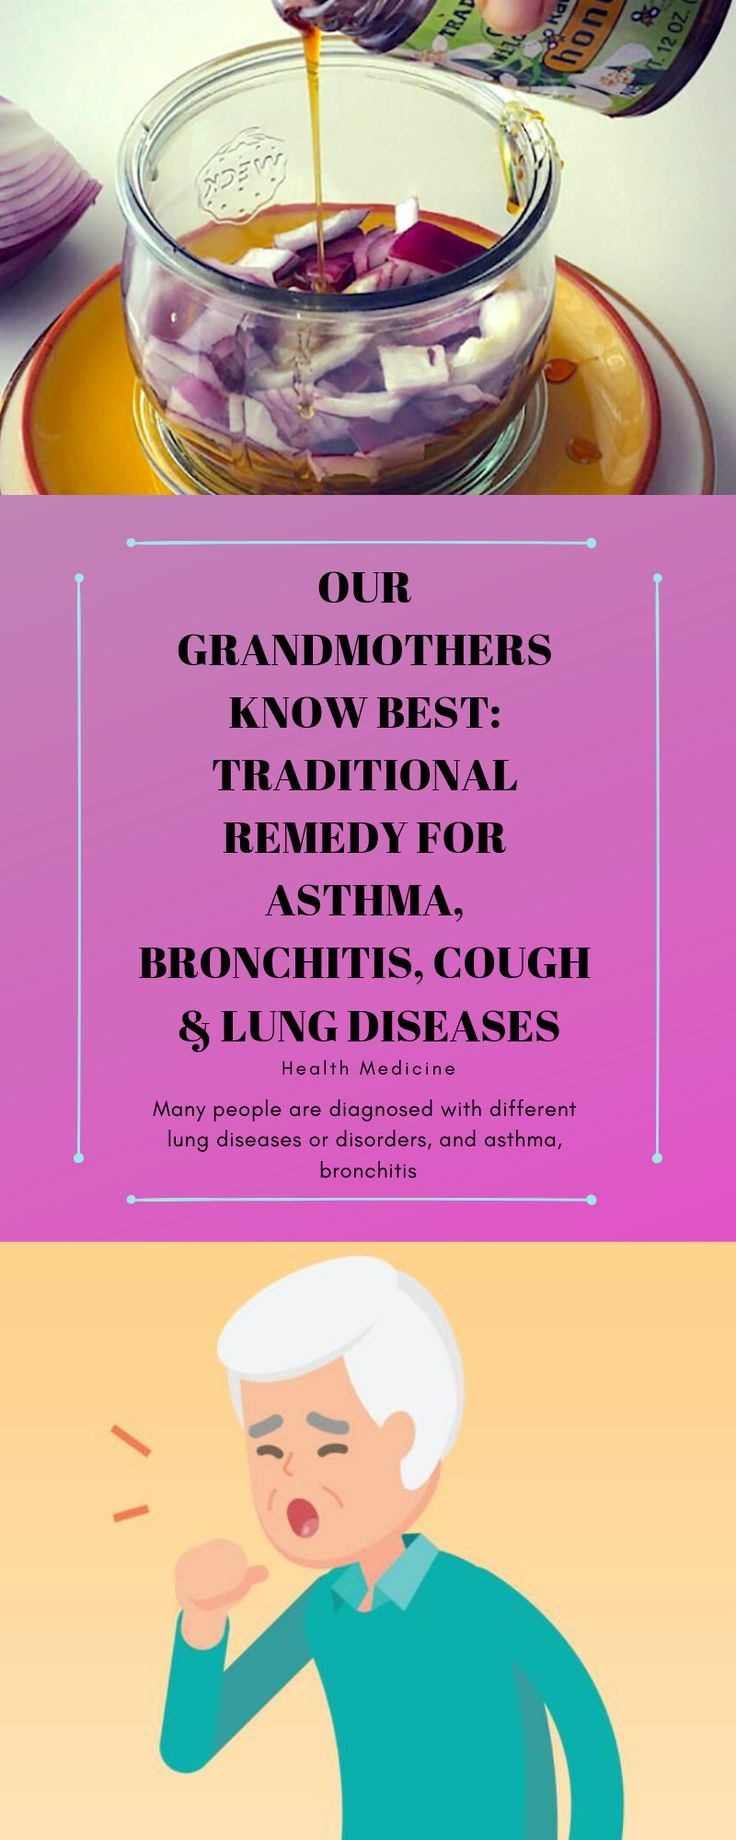 OUR GRANDMOTHERS KNOW BEST: TRADITIONAL REMEDY FOR ASTHMA, BRONCHITIS, COUGH & LUNG DISEASES Ann Eluned Roberts-Jabri